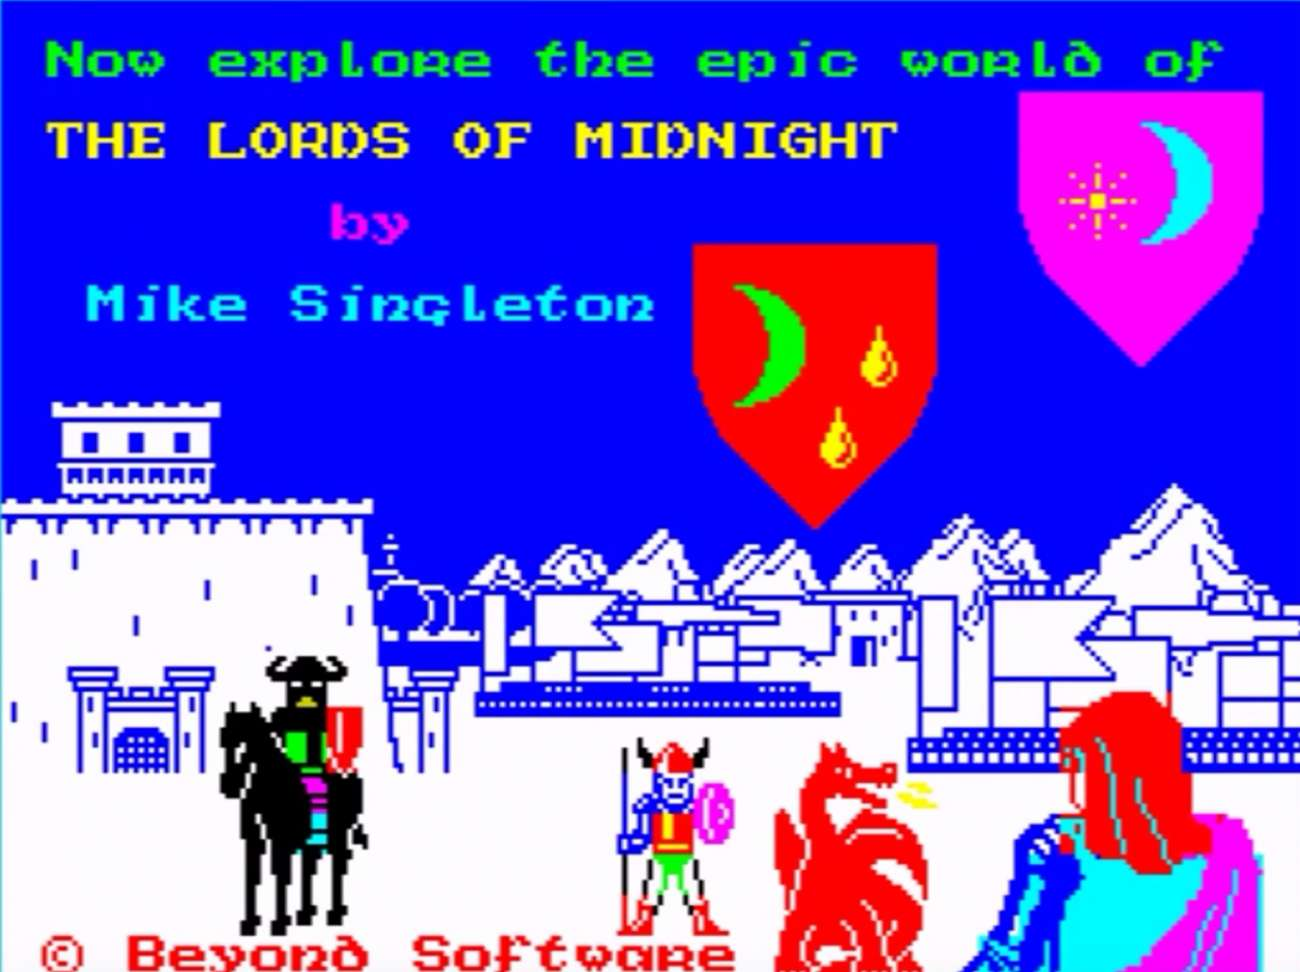 The Lords Of Midnight Is A Retro RPG That's Now Available For Free On GOG